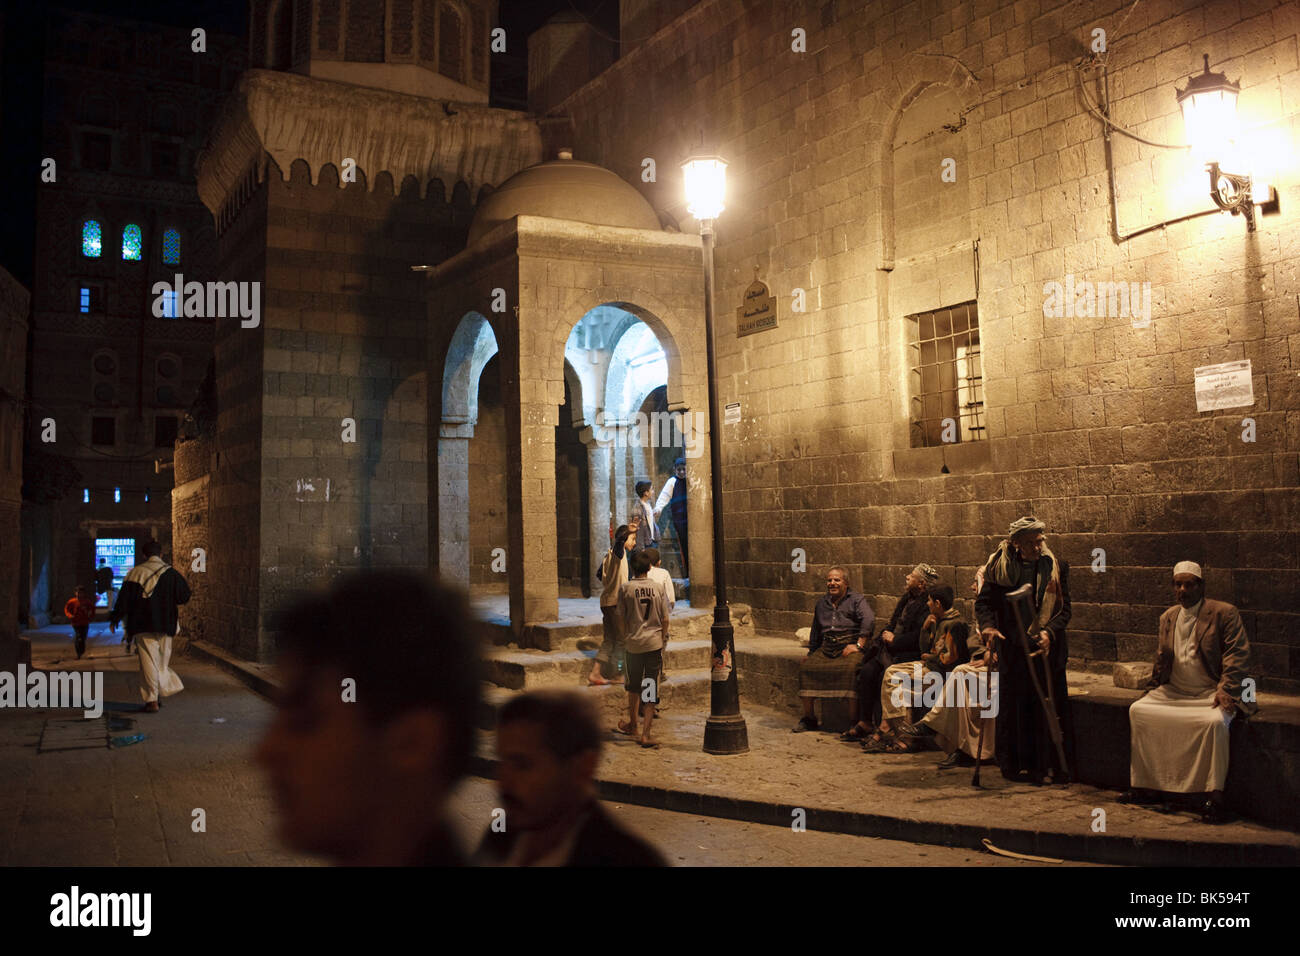 people at night outside an old mosque in Sana'a, Yemen - Stock Image